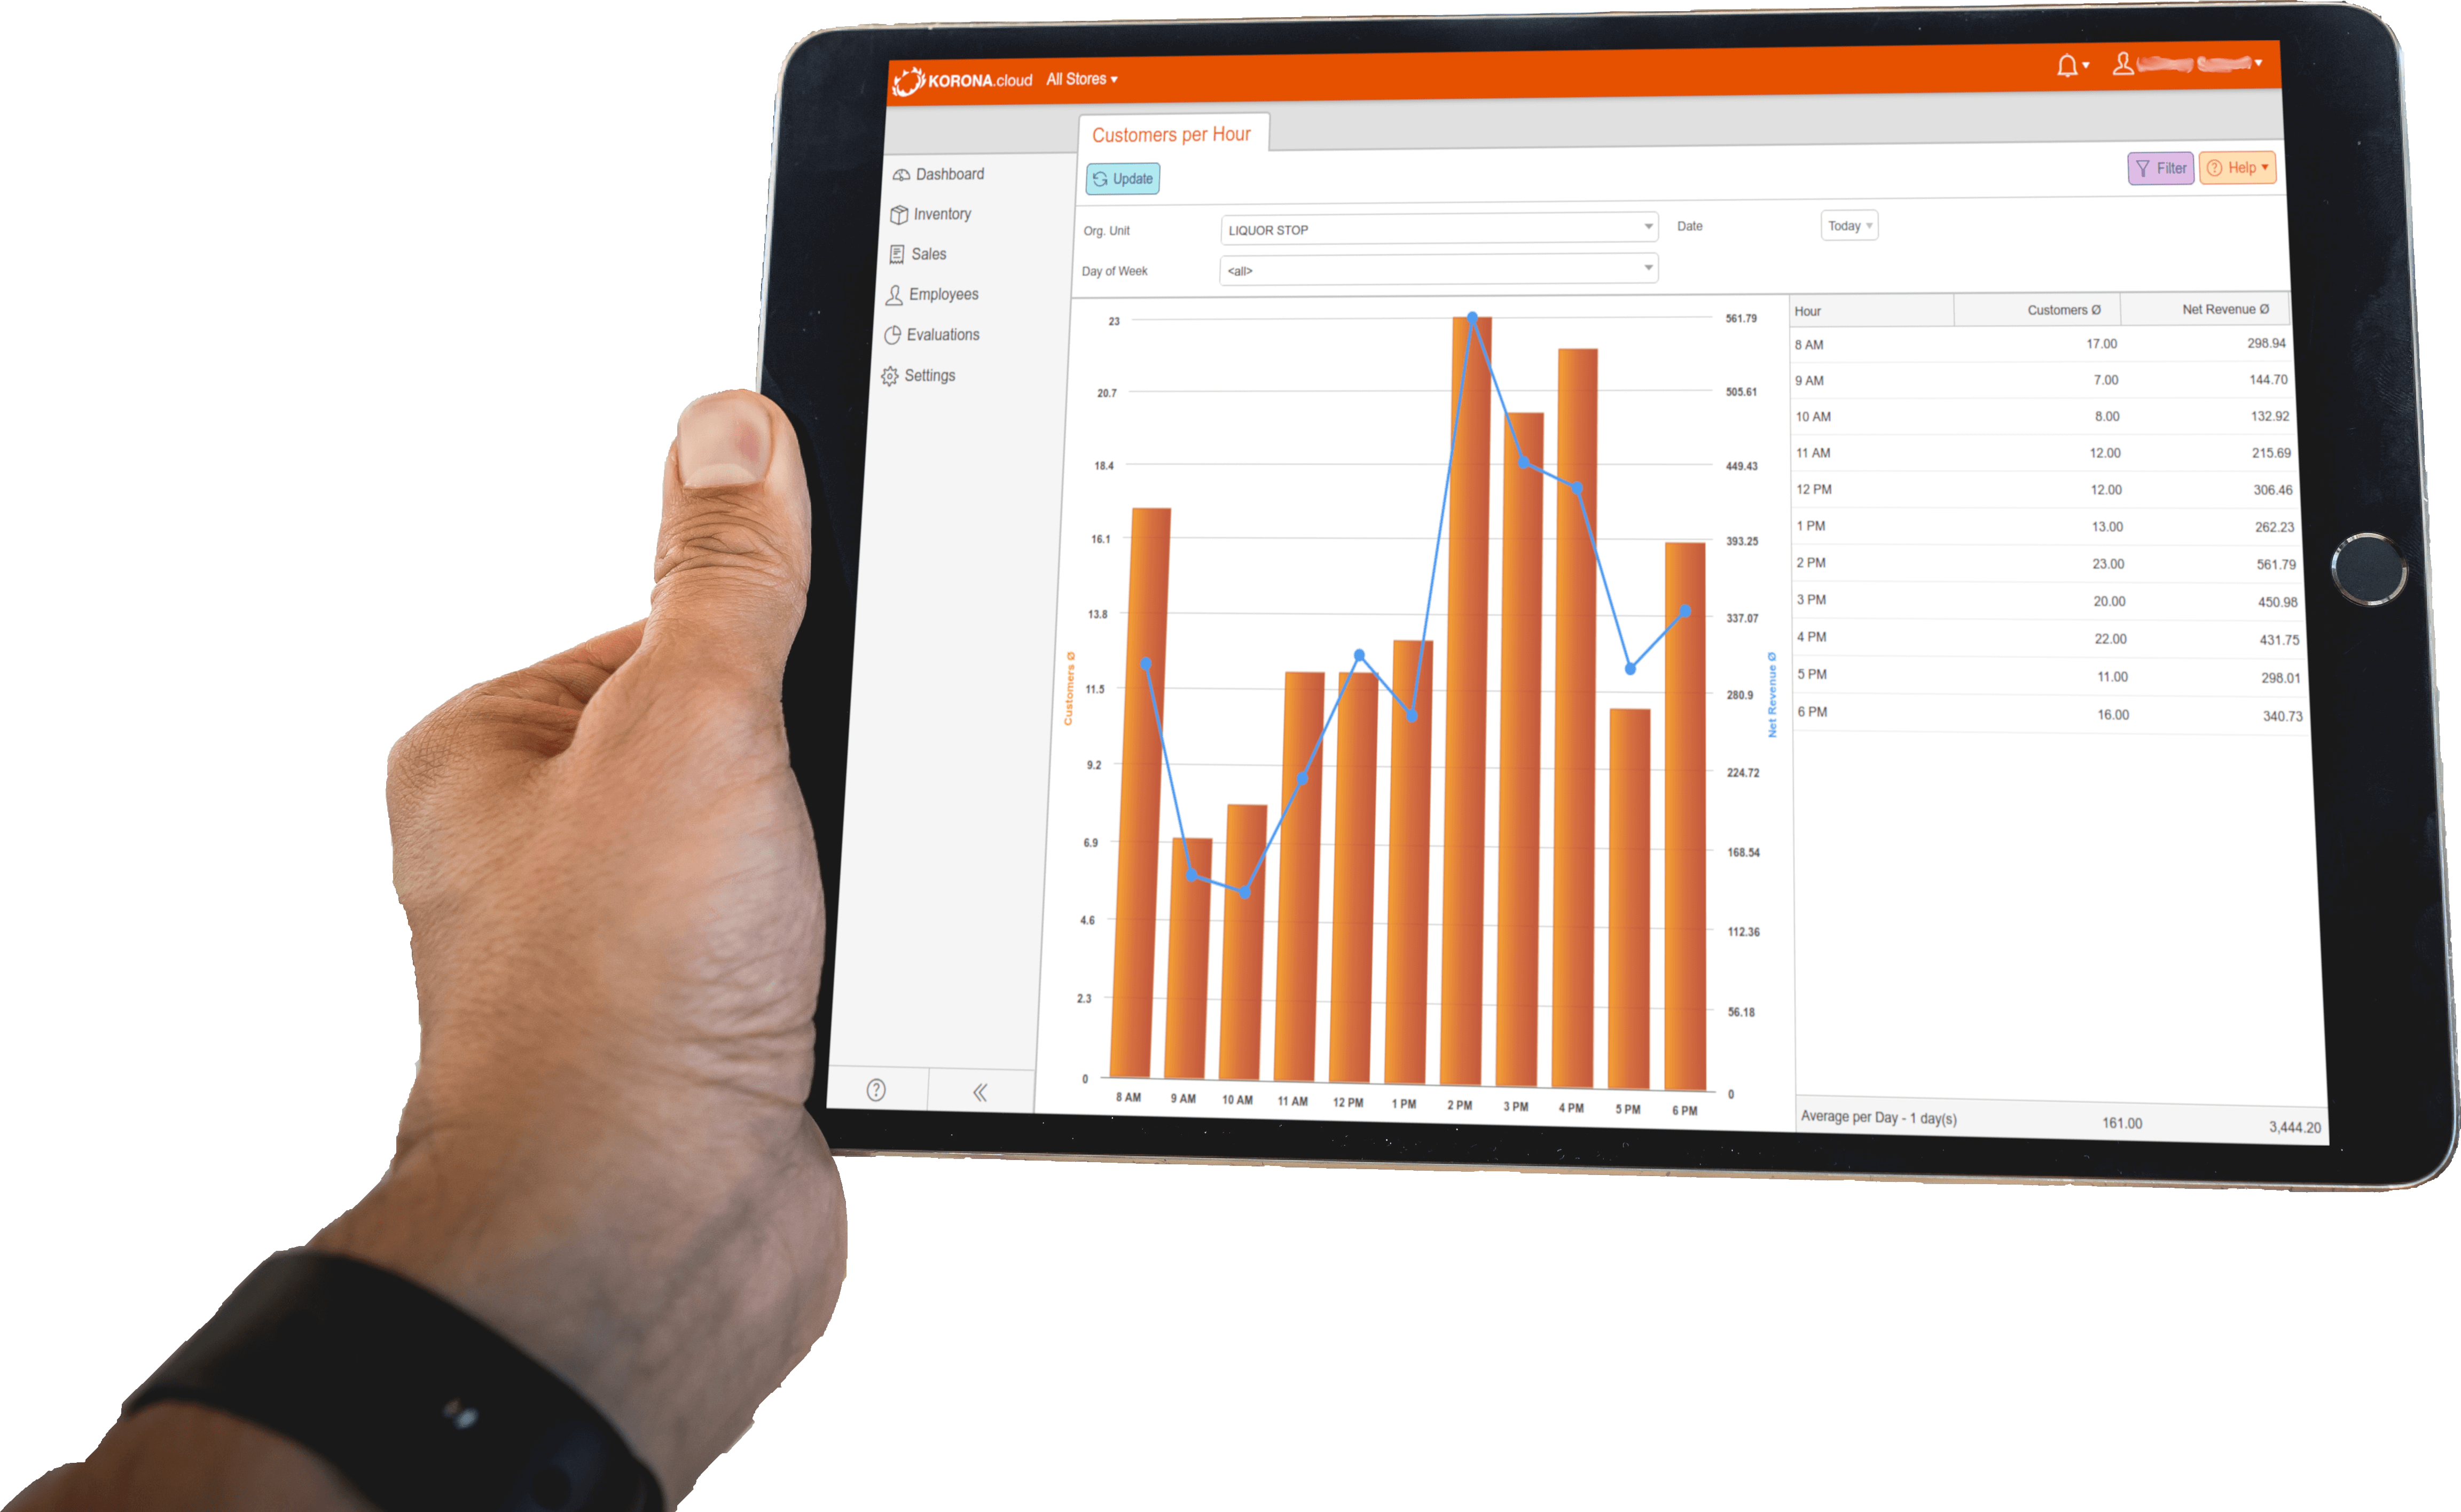 Hardware POS system with data and metrics on a mobile tablet